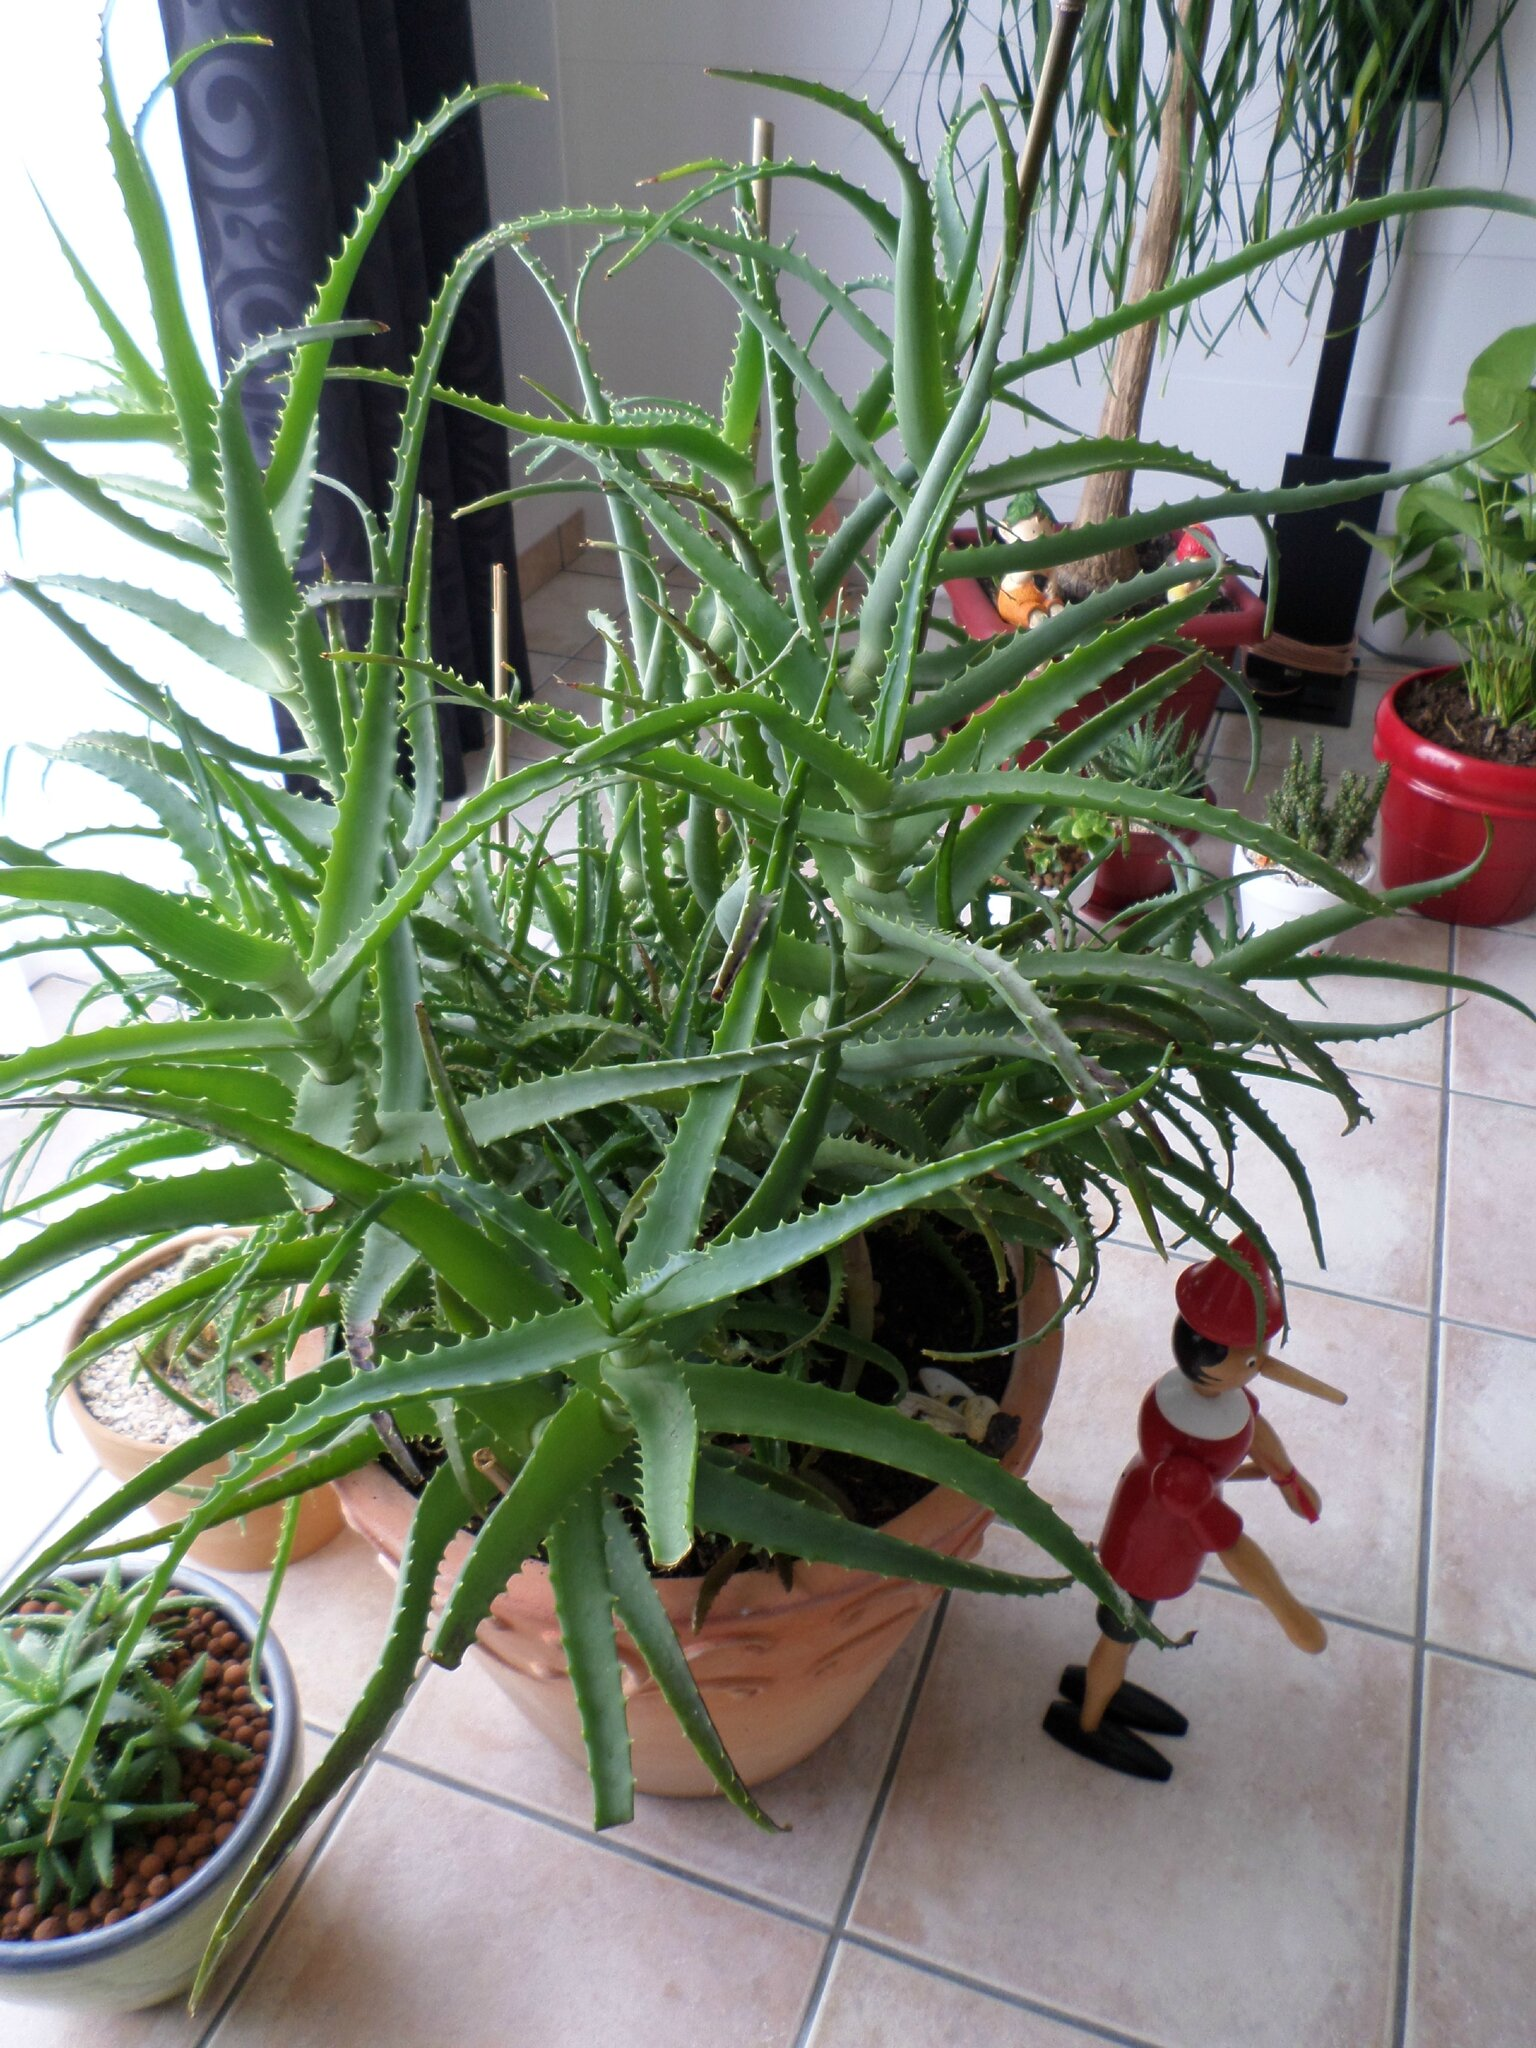 Plantes grasses d interieur for Plantes grasses fleuries interieur